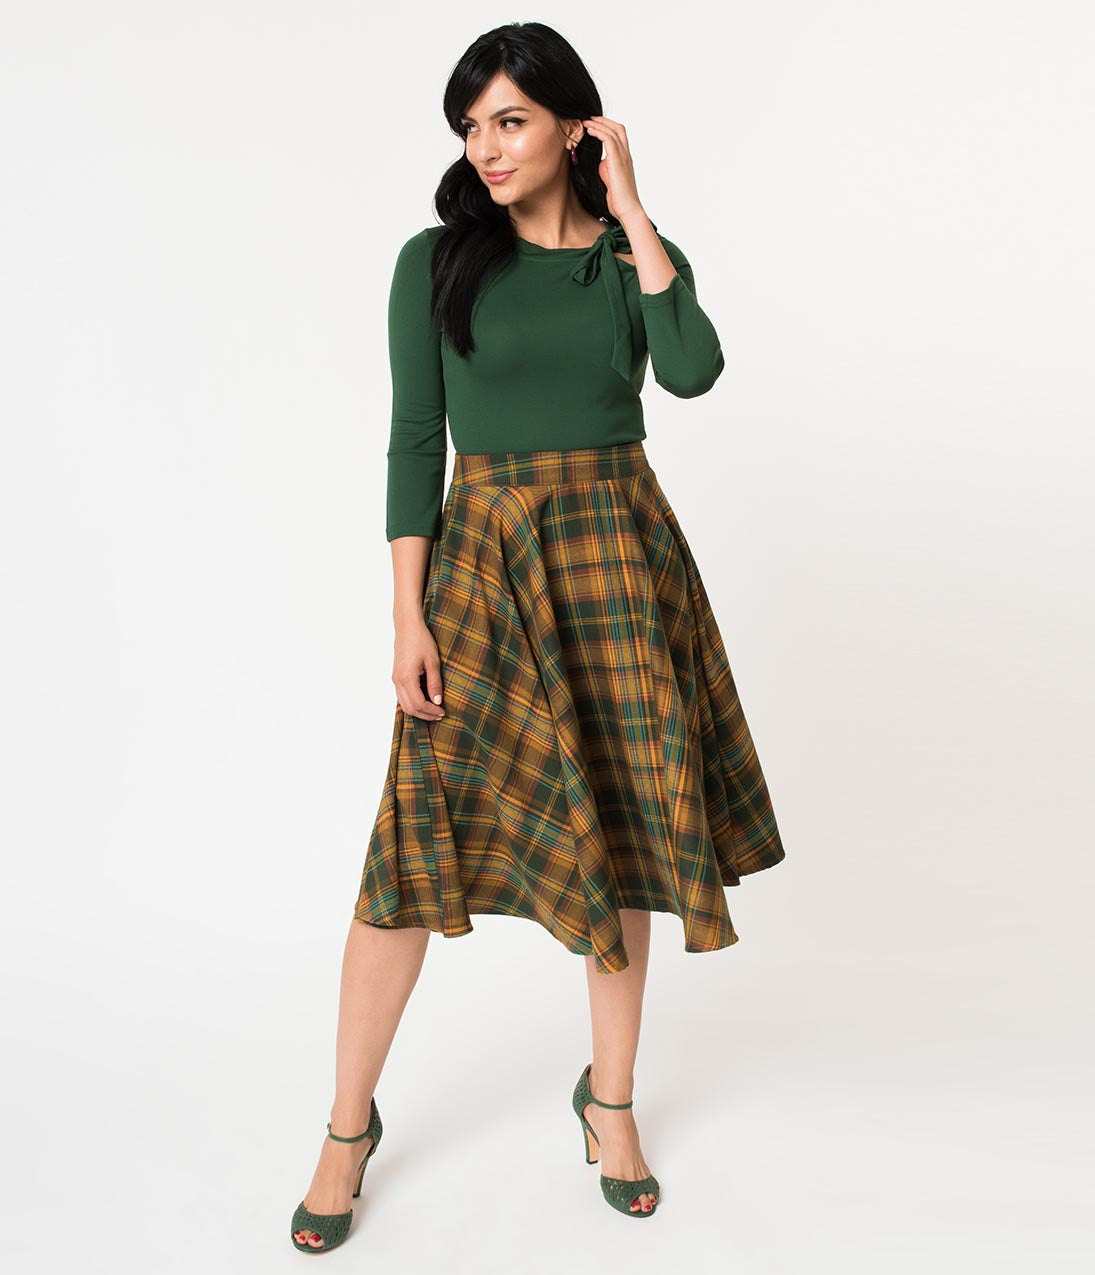 1950s Swing Skirt, Poodle Skirt, Pencil Skirts Voodoo Vixen 1950S Green  Yellow Tartan High Waist Swing Skirt $58.00 AT vintagedancer.com